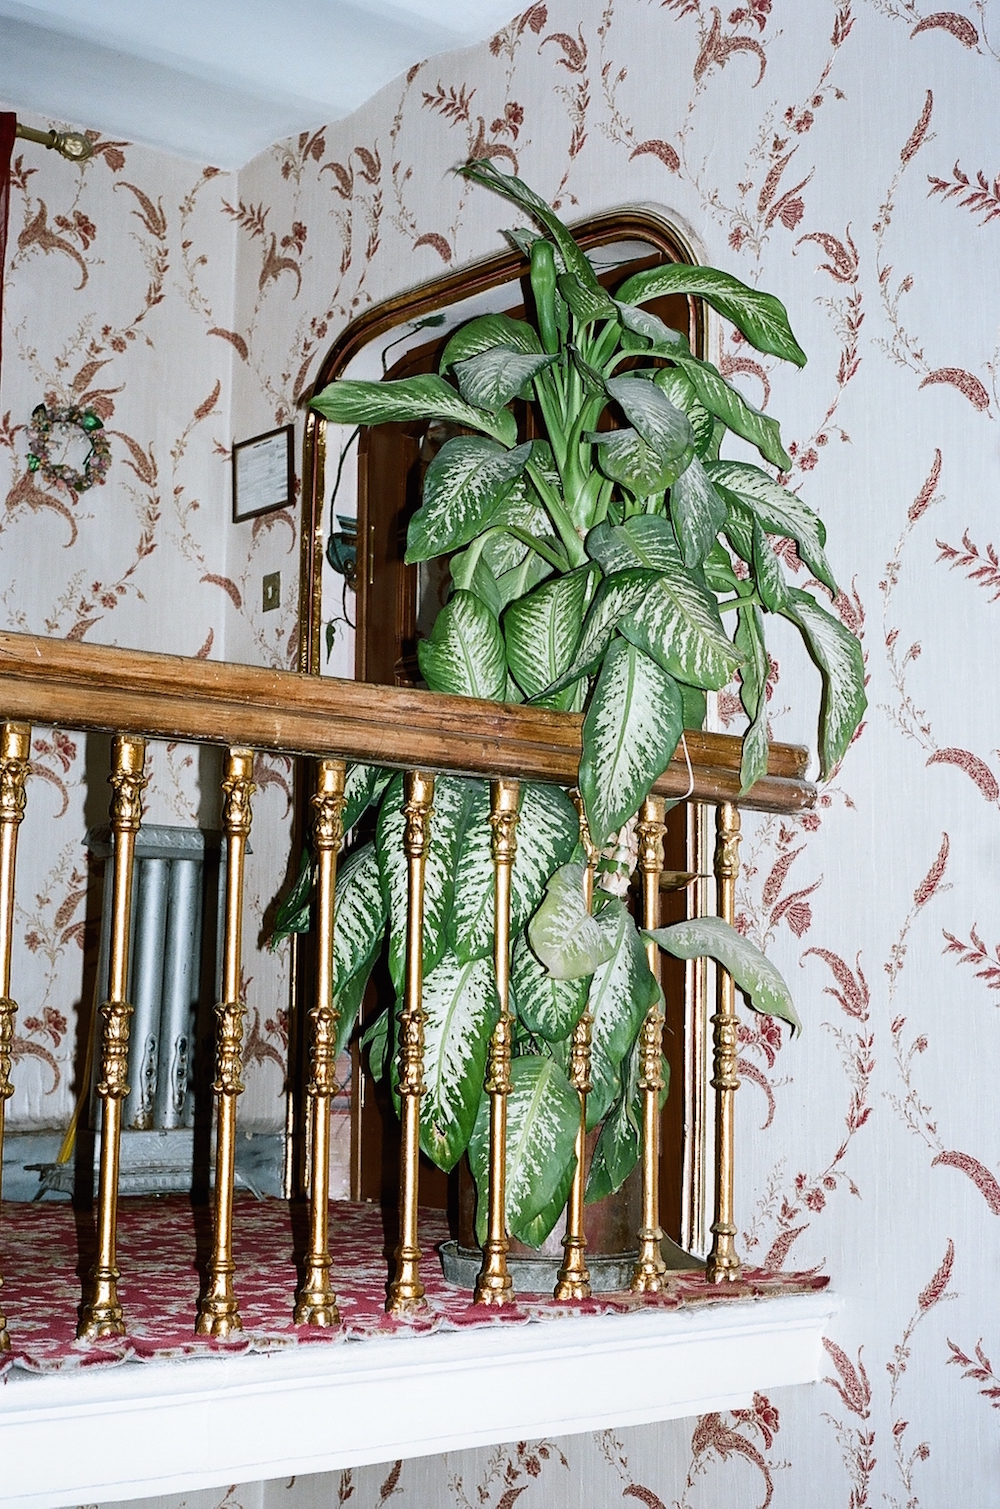 photo, photos, photography, photographer, photographers, plant, plants, botanical, stairs, flash, gold, wood